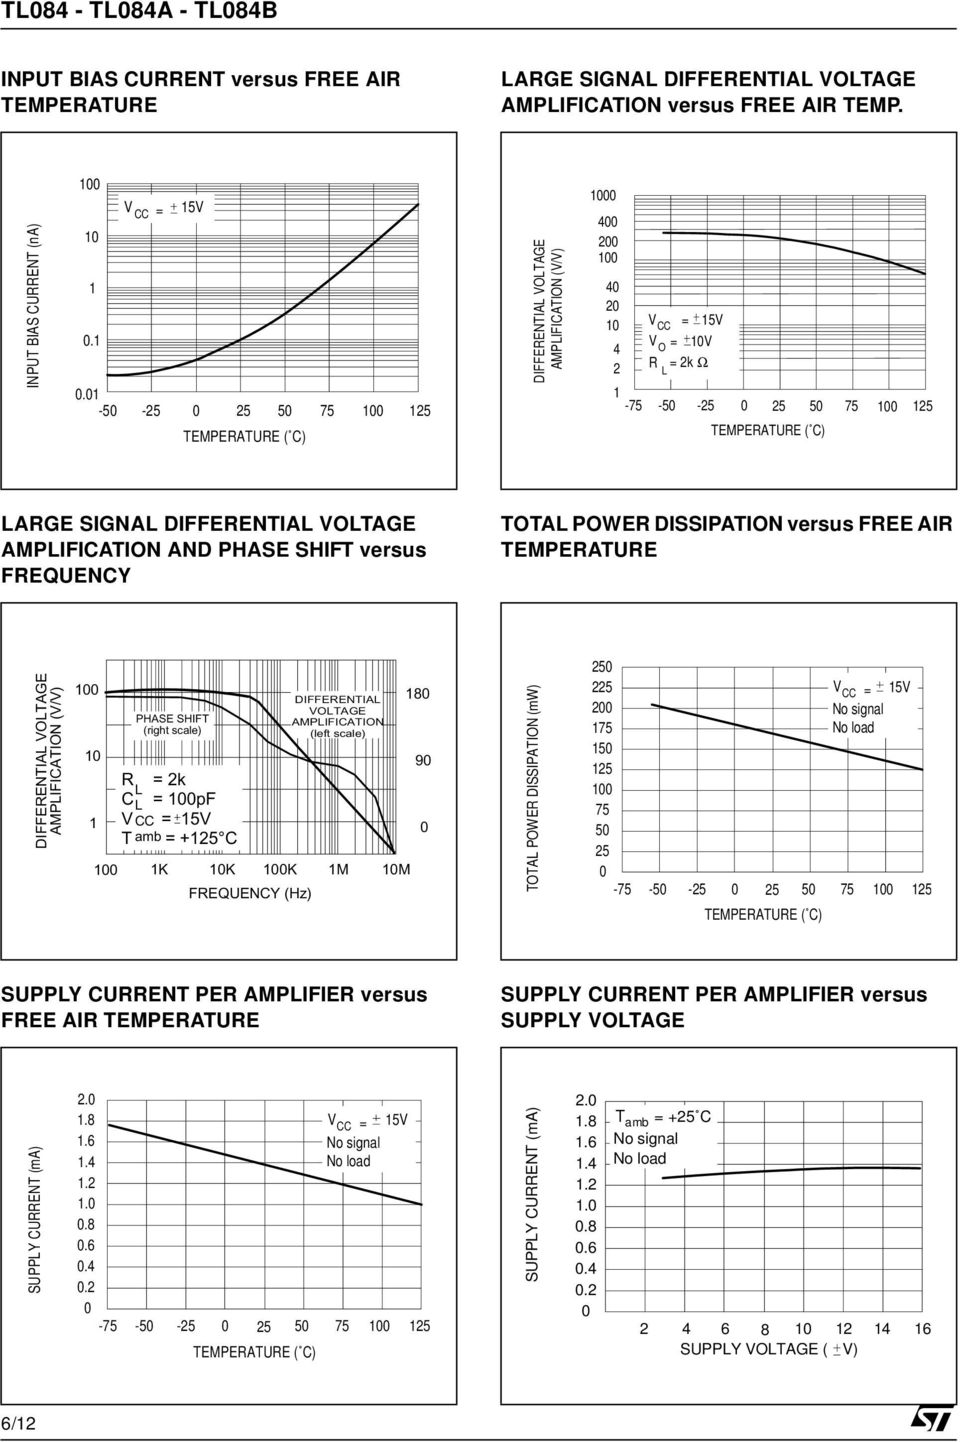 DIFFERENTIAL VOLTAGE AMPLIFICATION AND PHASE SHIFT versus FREQUENCY TOTAL POWER DISSIPATION versus FREE AIR TEMPERATURE TOTAL POWER DISSIPATION (mw) 250 225 200 175 150 5 0 75 50 25 0 V CC = 15V No